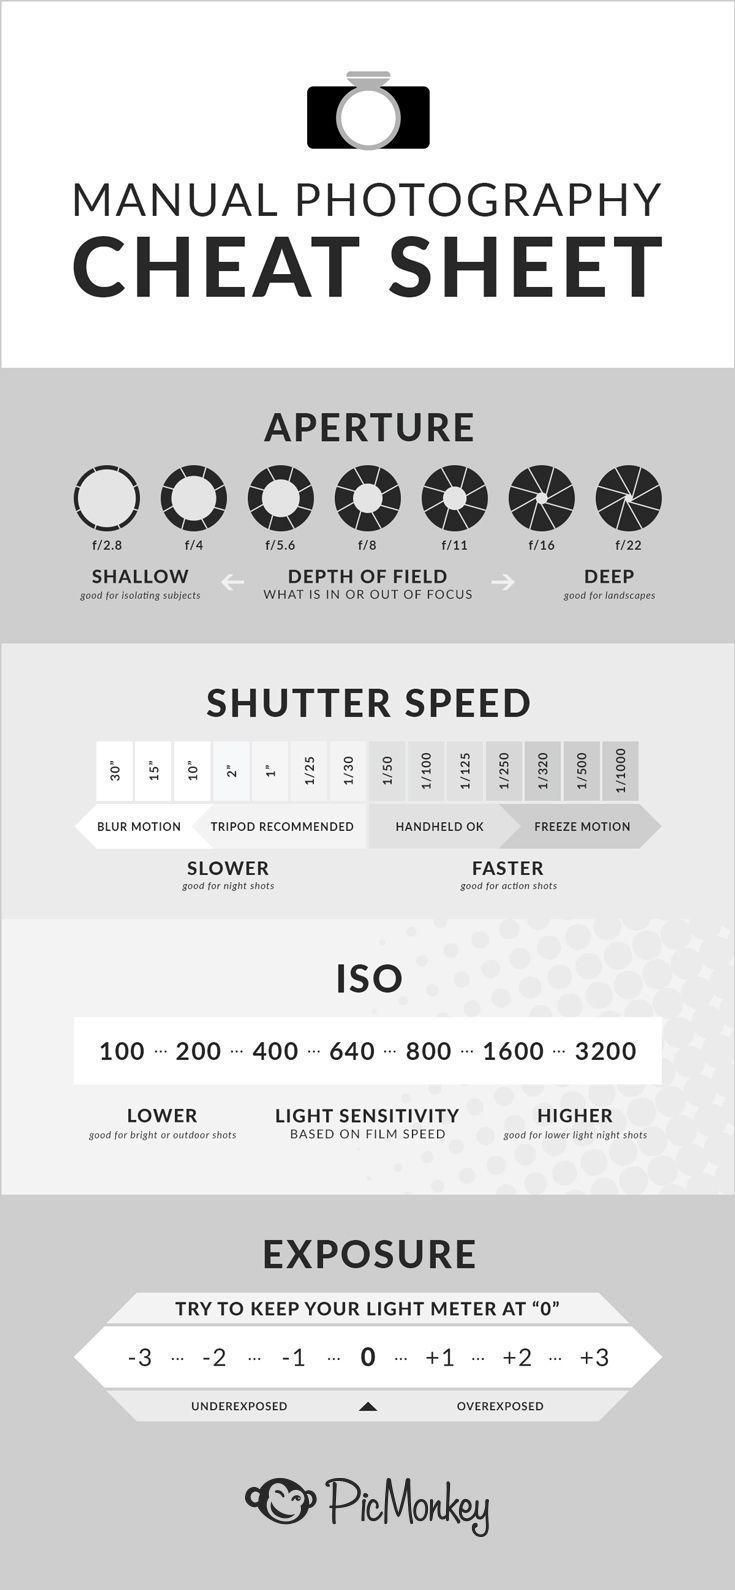 Best DSLR Under 1000 in 2018: 5 High-Quality Cameras You Can Afford -  Photography tips   Your ultimate photography cheat sheet guide. Complete with info about…  - #